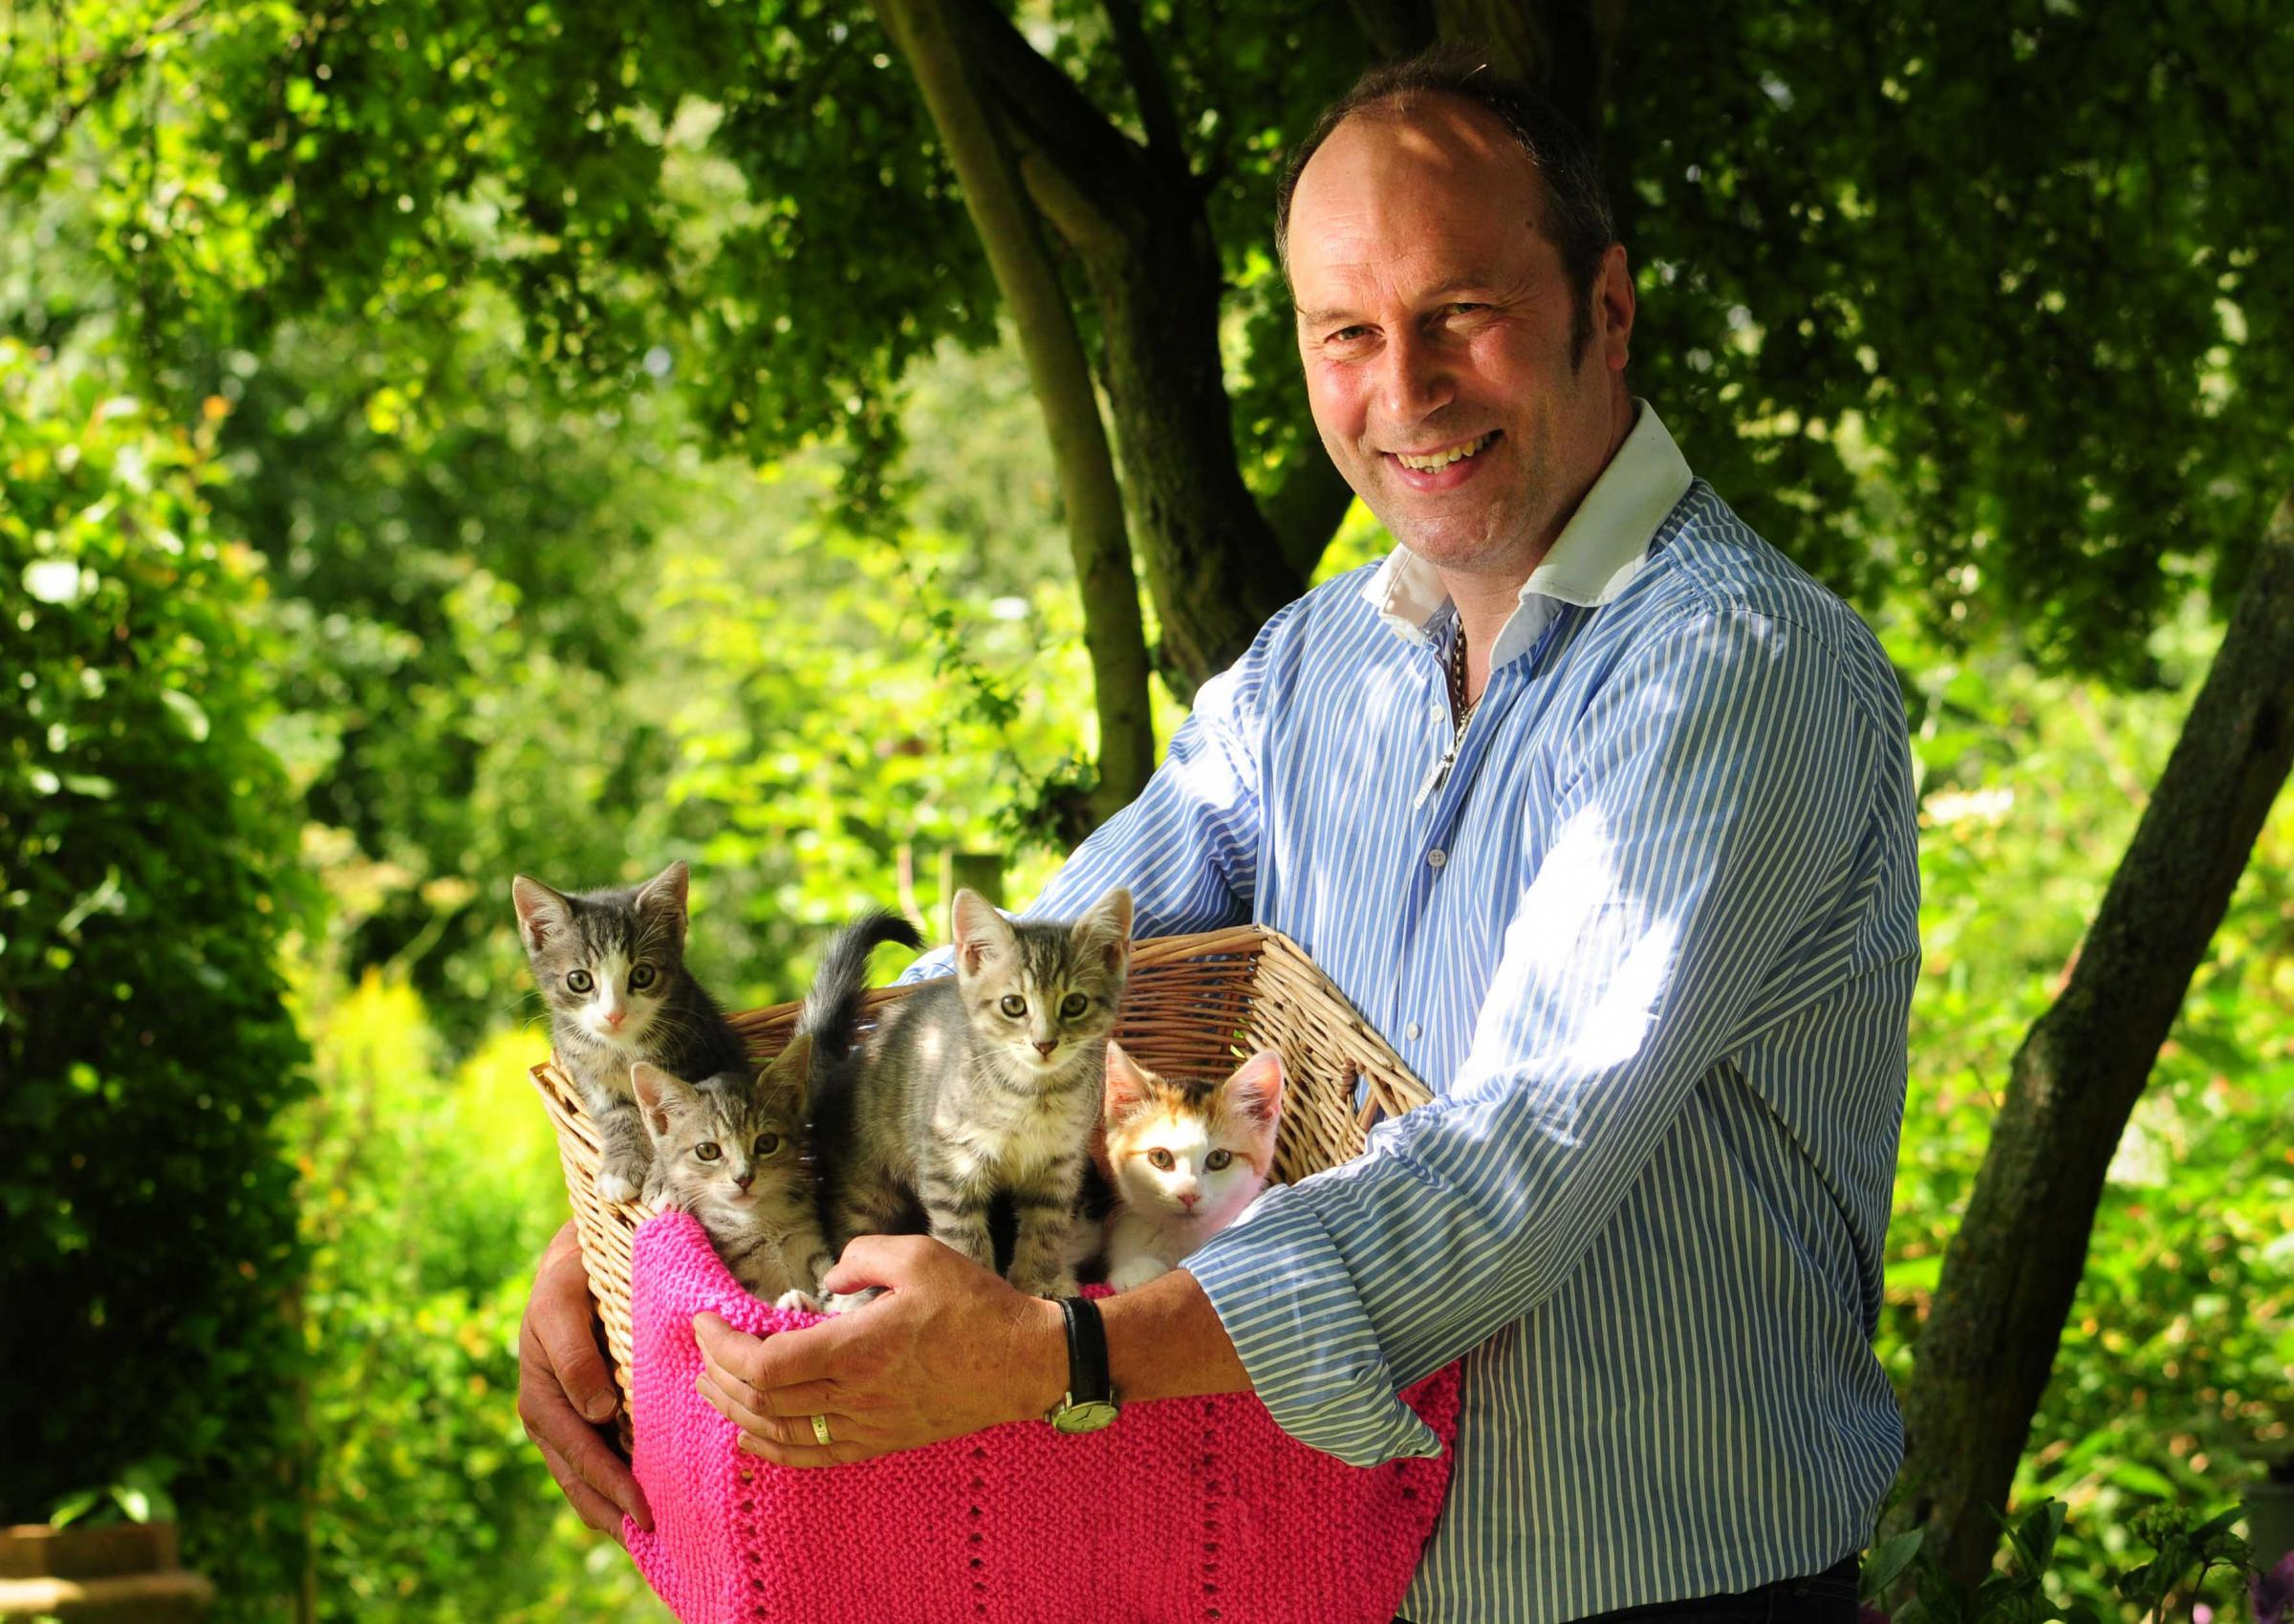 James Watruss with some of the 30 cats the Cats Protection League, in Amotherby, is trying to rehome